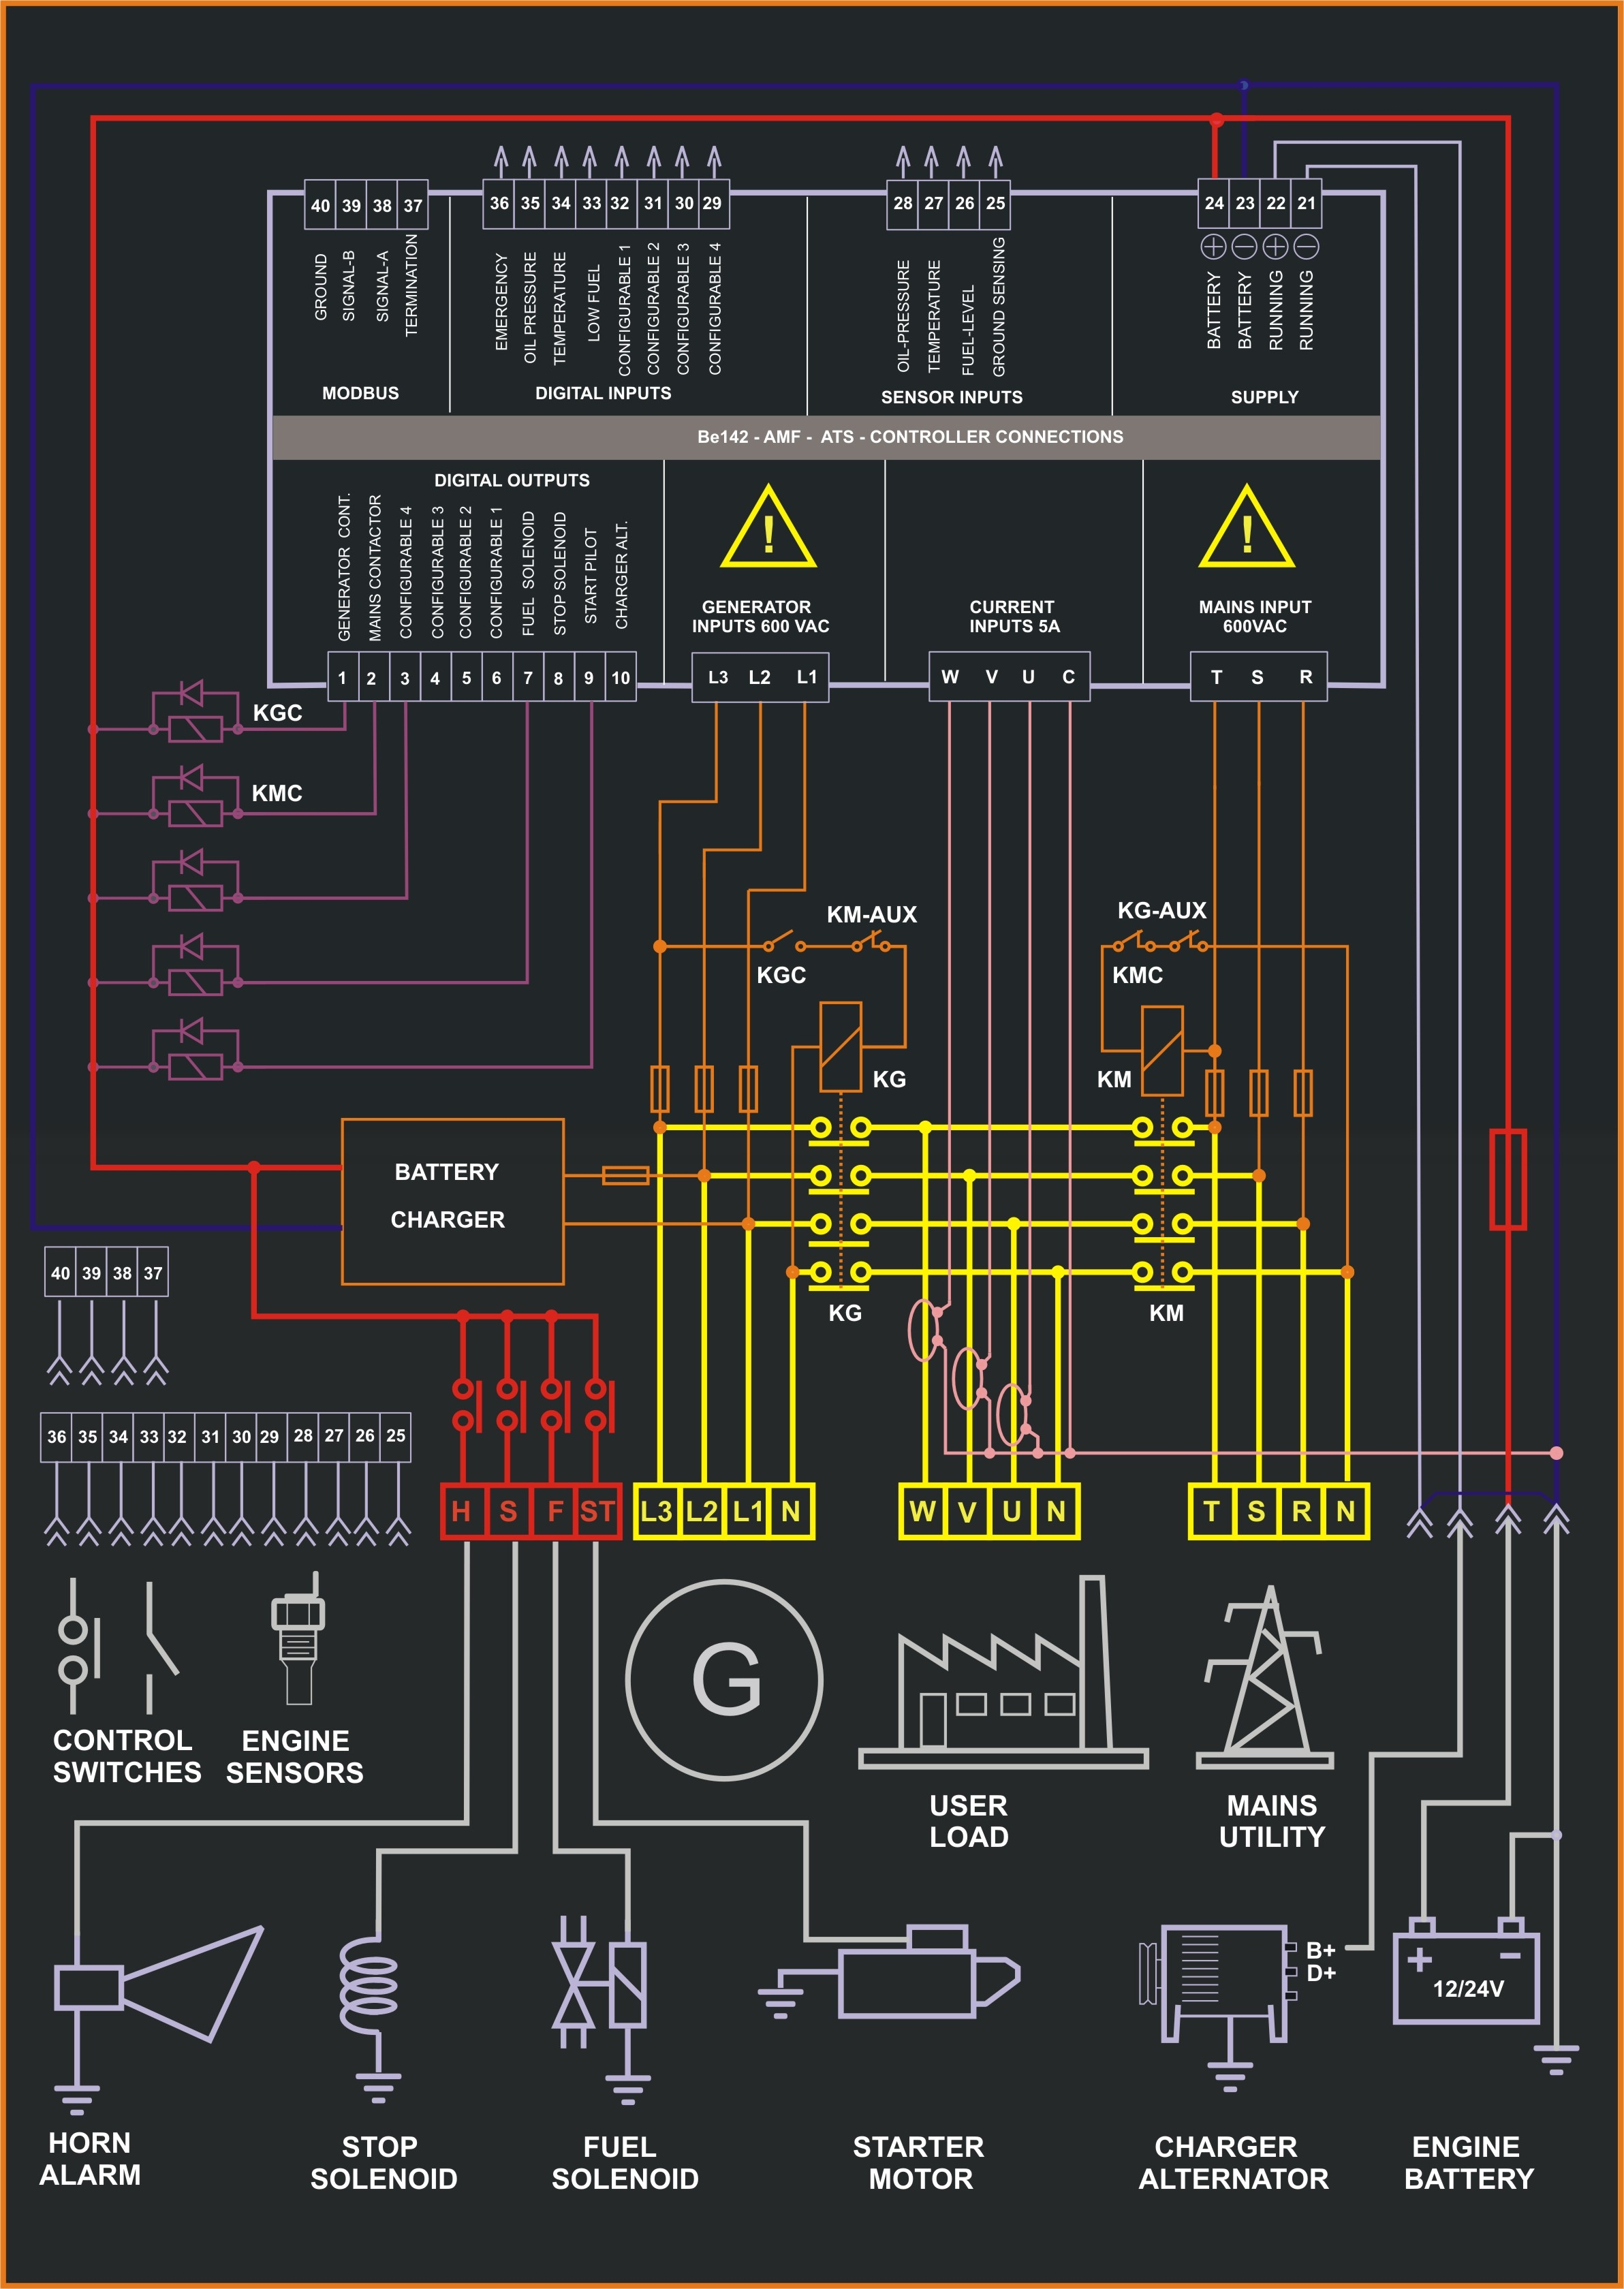 Control panel circuit diagram pdf control panel circuit diagram genset controller generator control panel wiring diagram at gsmportal.co